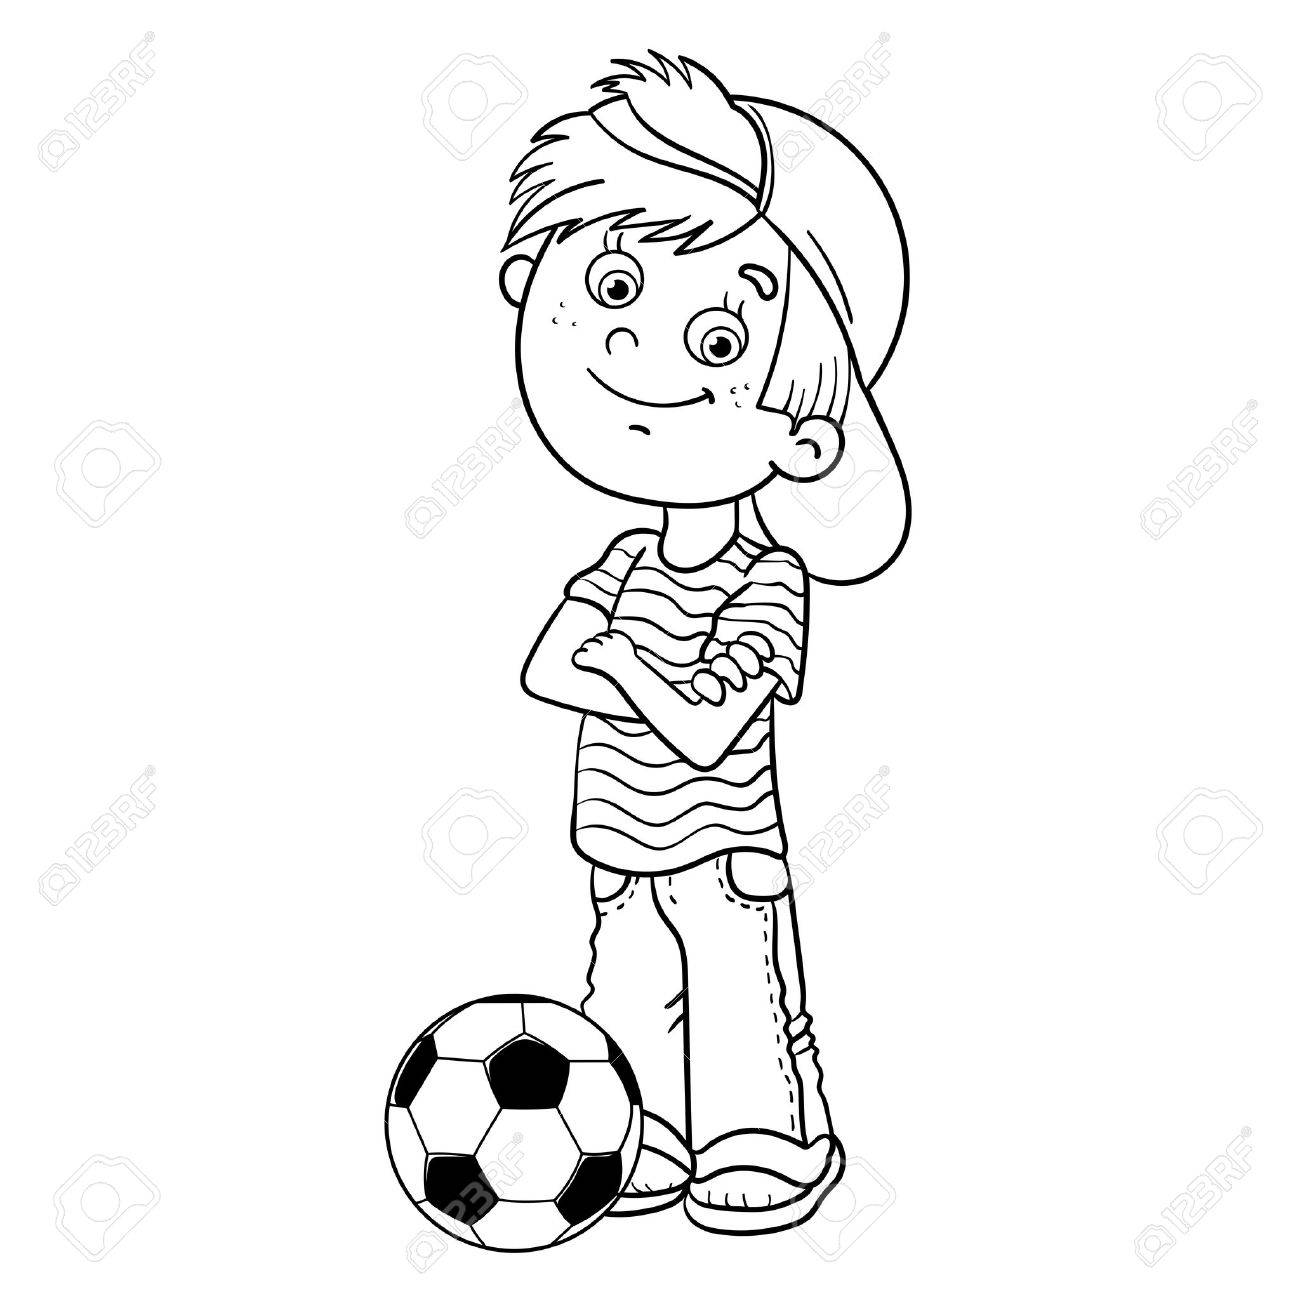 1300x1300 Coloring Page Outline Of A Cartoon Boy With A Soccer Ball Royalty